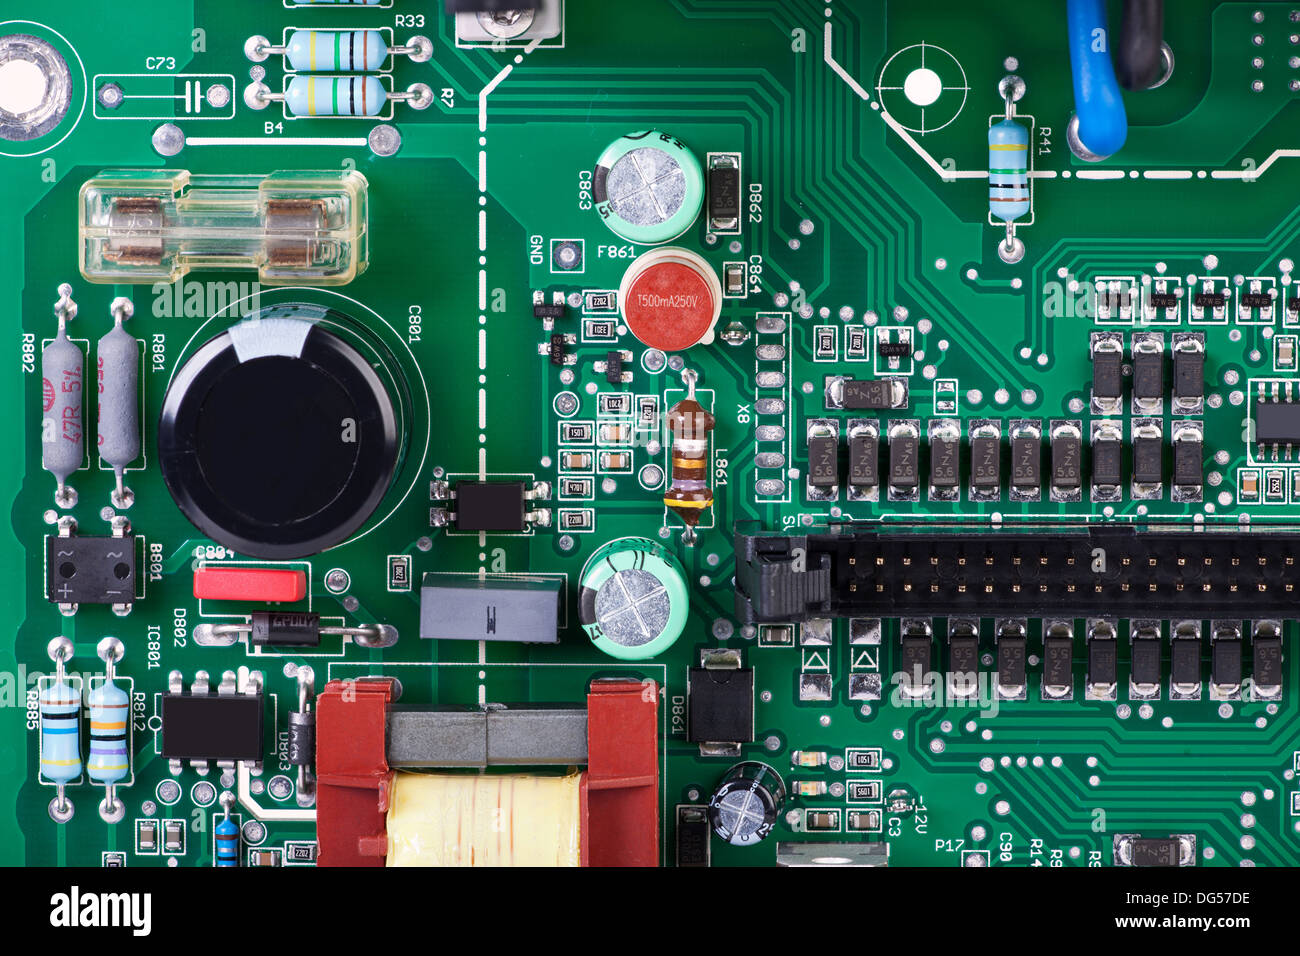 No Electronic Devices Stock Photos Canary Circuit Board With Many Conventional And Smd Components Image